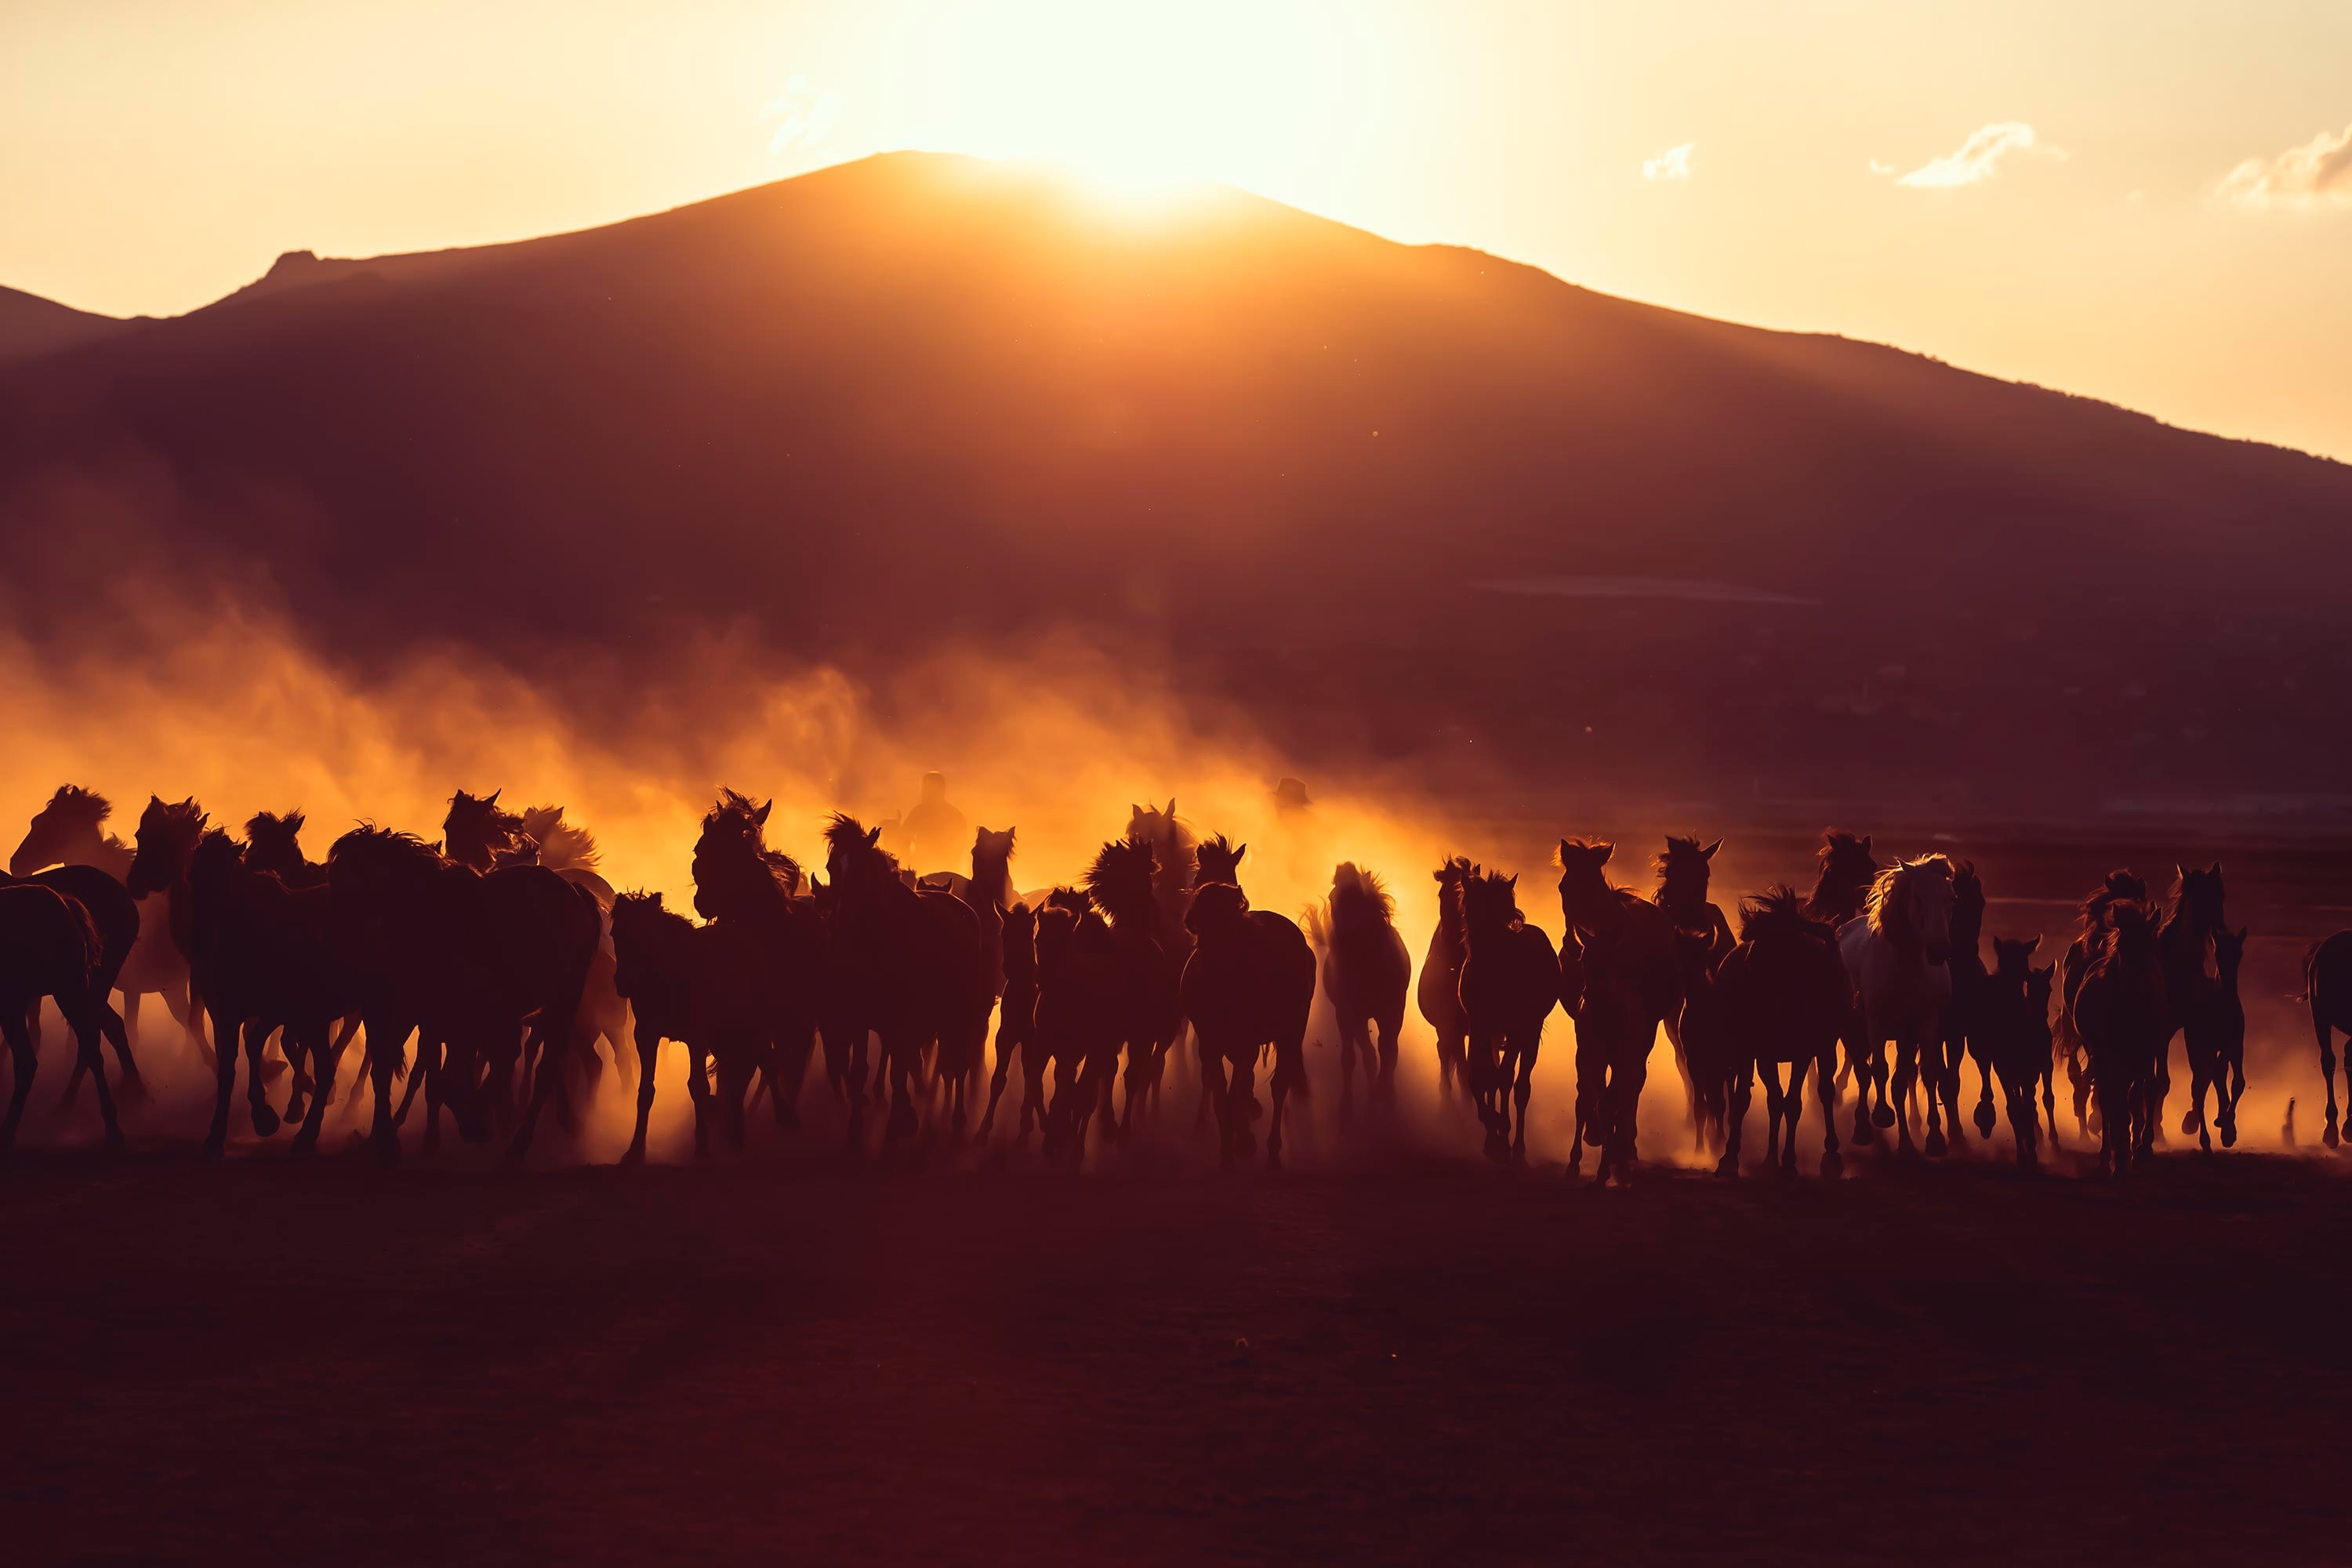 51069 download wallpaper Horses, Animals, Sunset, Dark, Dust, Herd screensavers and pictures for free